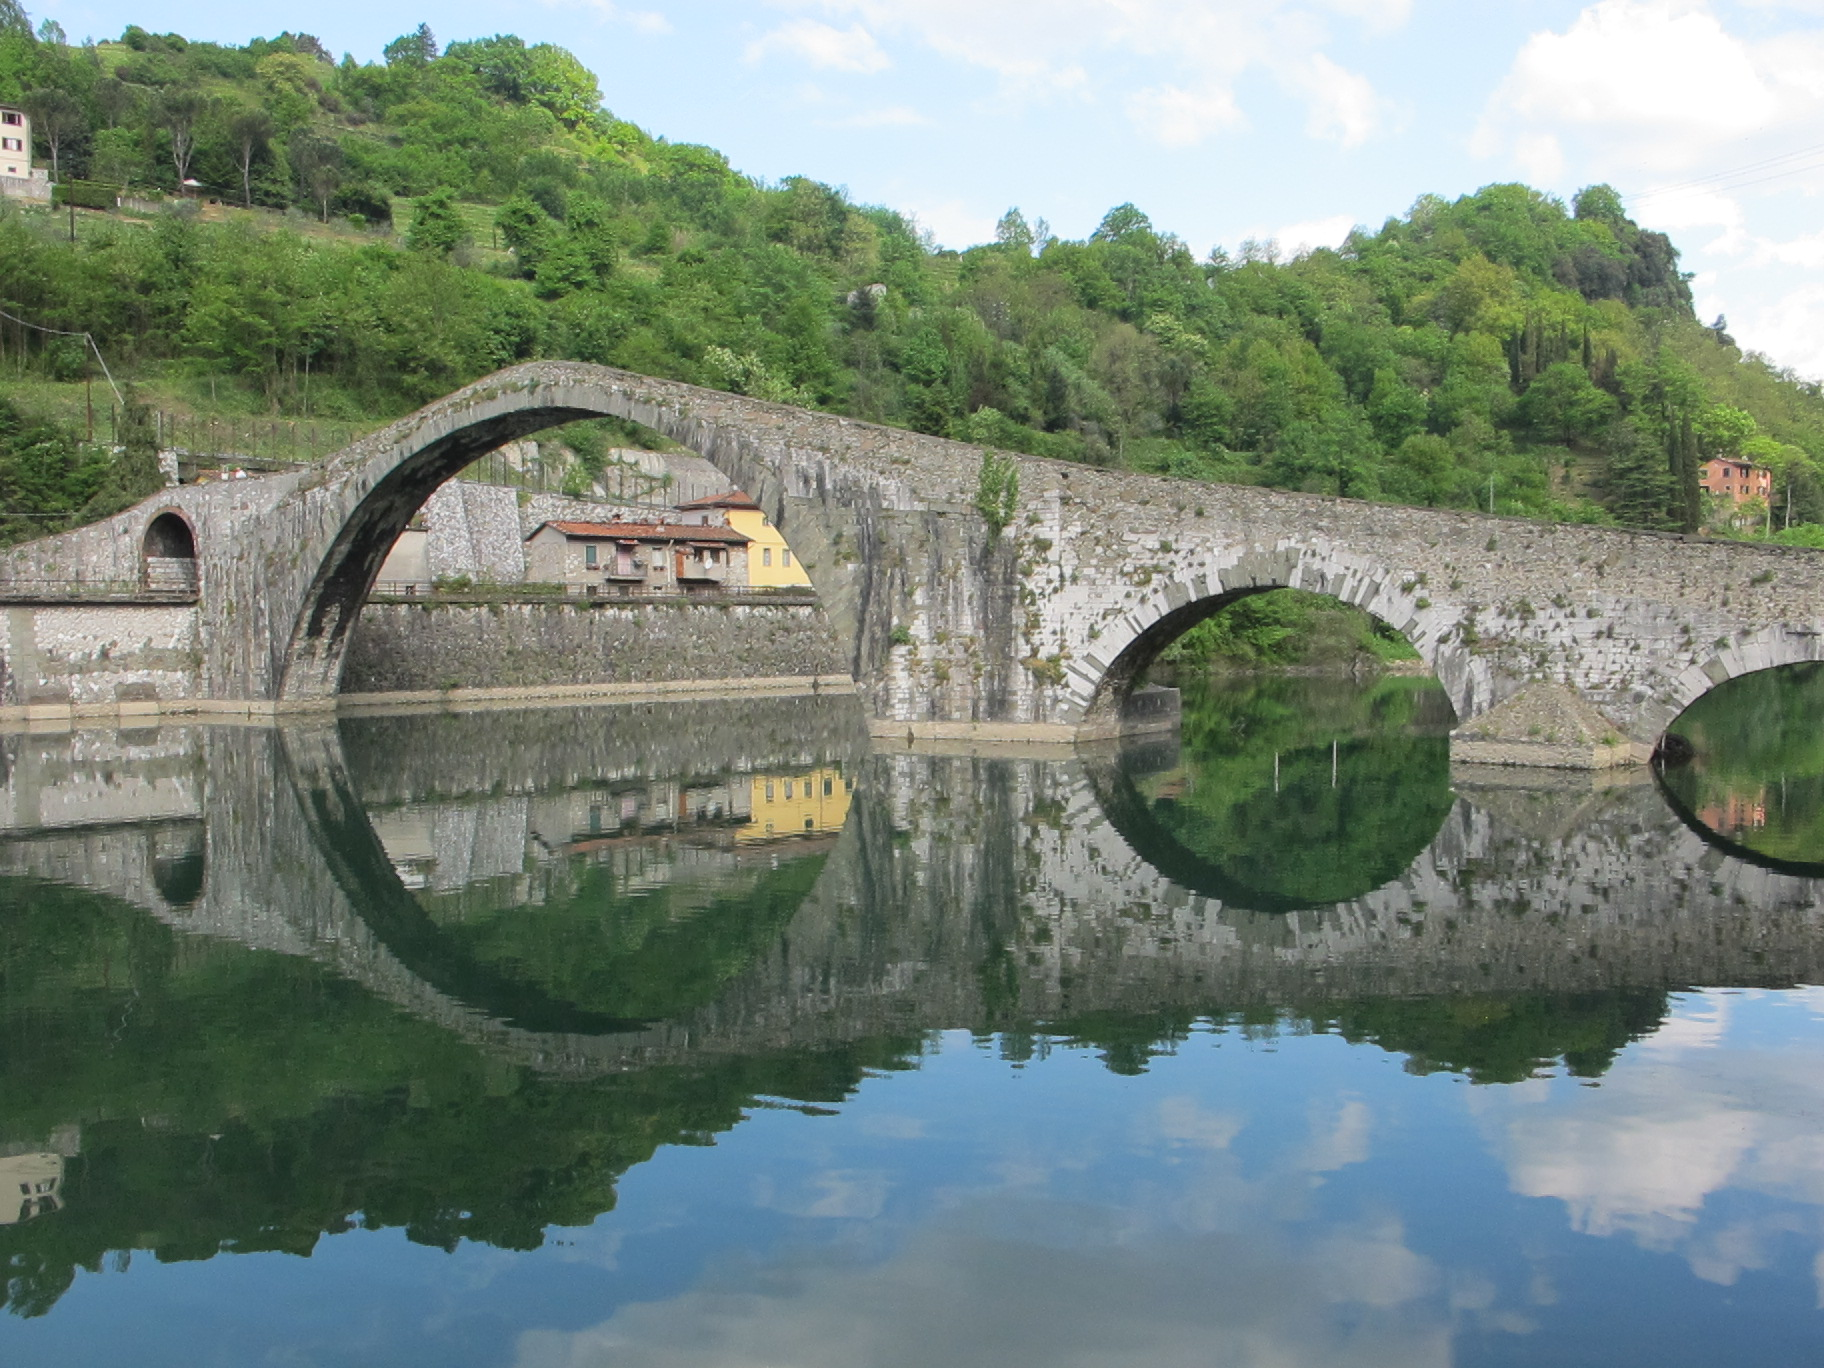 devils bridge on the way to lucca